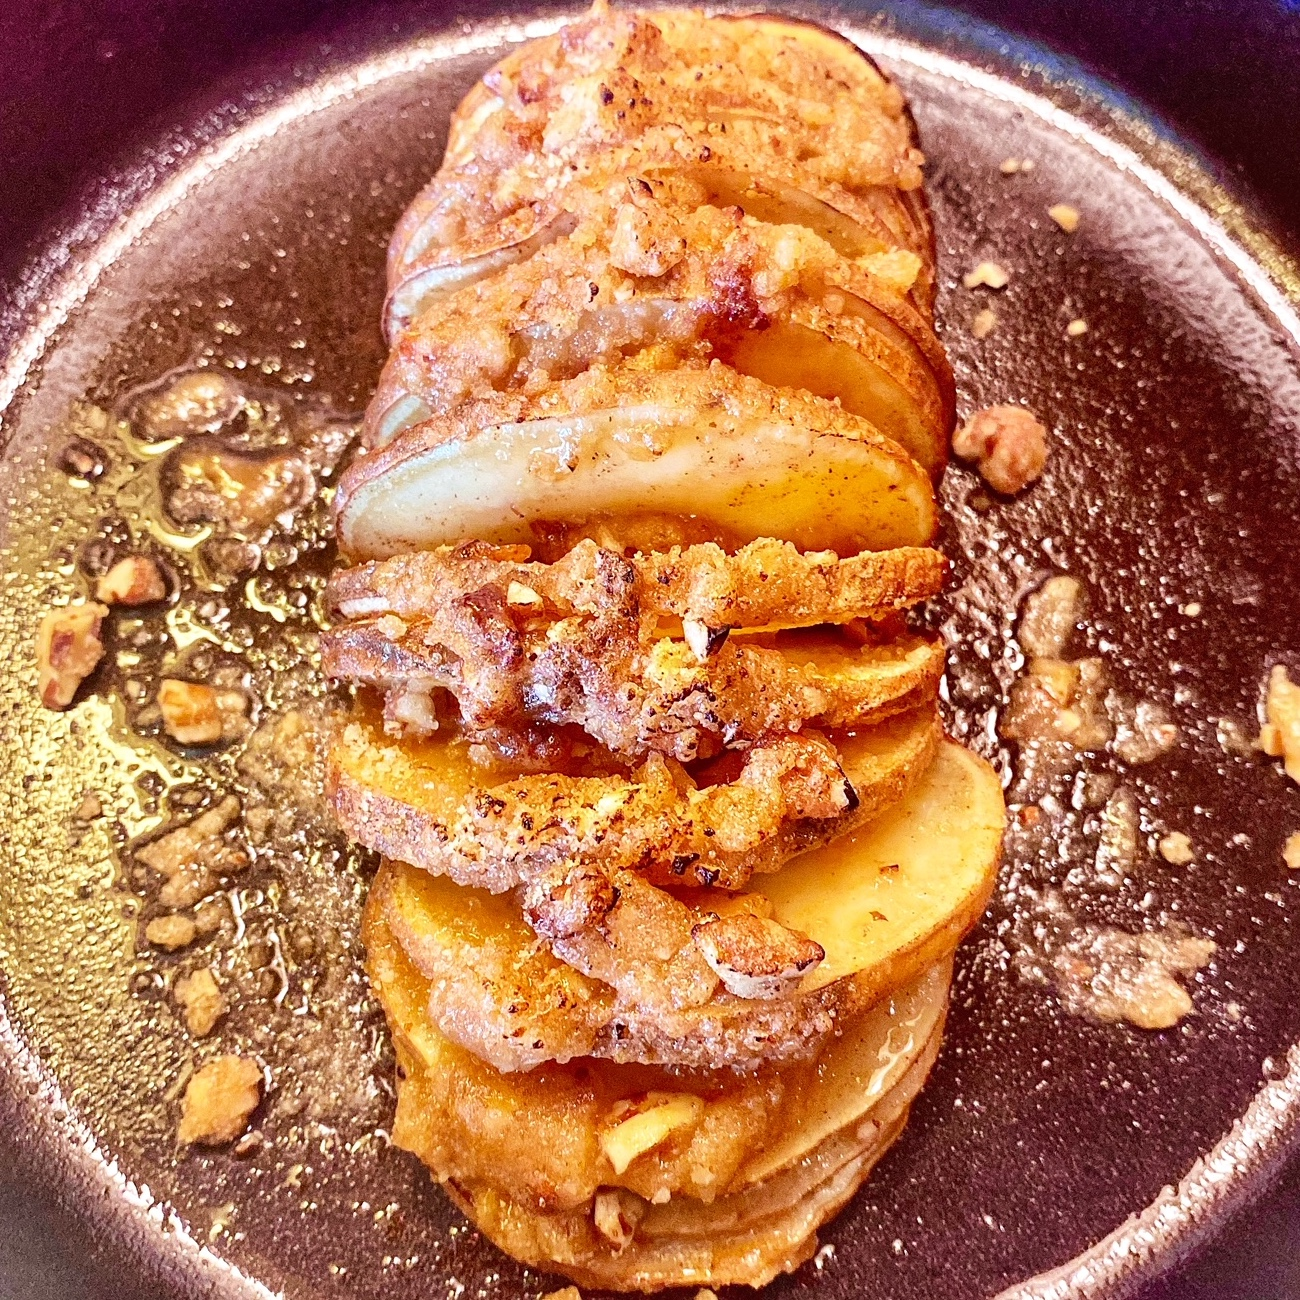 hasselback sweet potato with streusel topping in a skillet